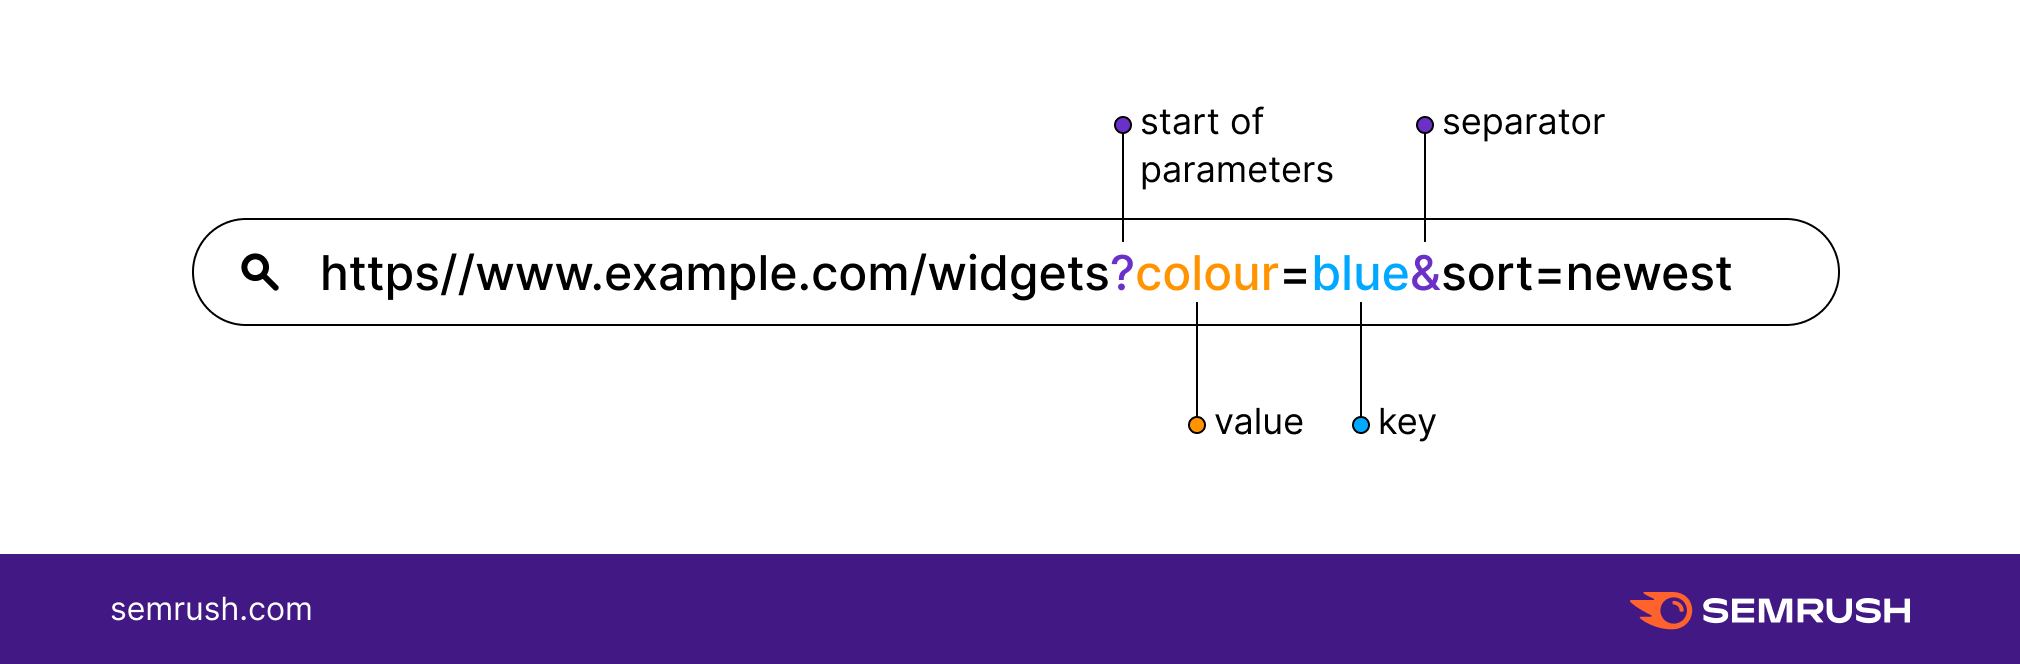 Guide to URL Parameters 1